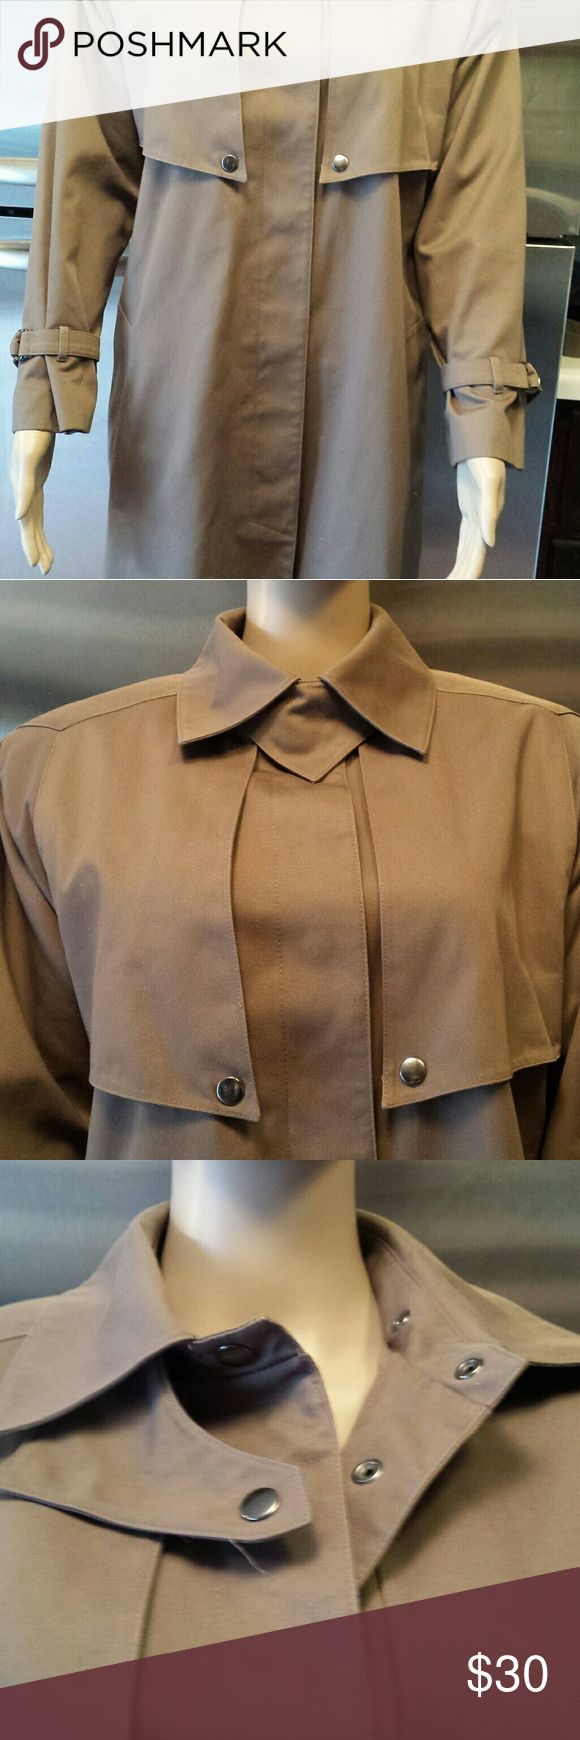 """Women's Bromley Trench / Rain Coat Petite Size 4 Bromley  Trench Coat w/ Lining. Med Brown . Size Petite 4. Top of neck to bottom of coat is 44"""" . Has 6 snaps down the  front. Comes with a belt but no loops. Two pockets. Had a take out lining. No stains or tears. Excellent Condition Bromley Jackets & Coats Trench Coats"""